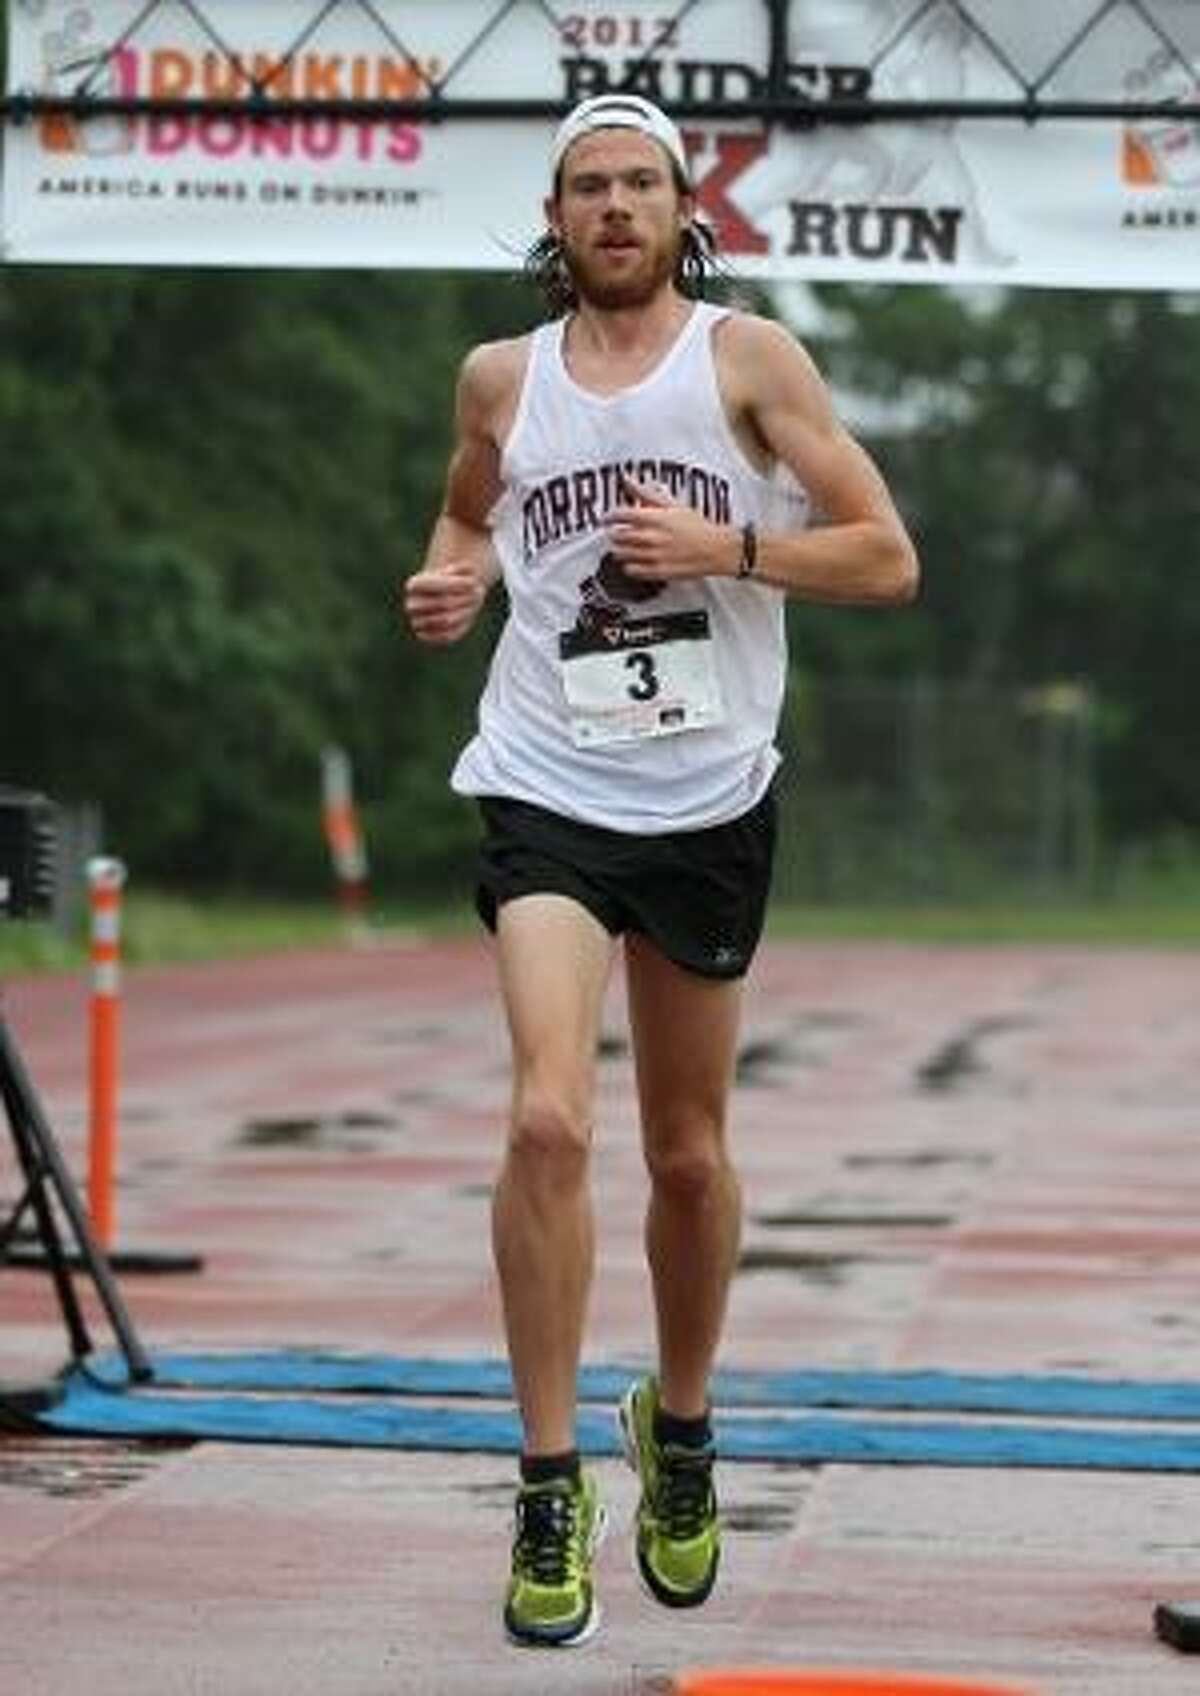 MARIANNE KILLACKEY/Register Citizen Correspondent Torrington High School Class of 2002 graduate and former Red Raider standout Stephen Pretak grabbed the top spot in the first-ever Raider Run 5K on Saturday morning.